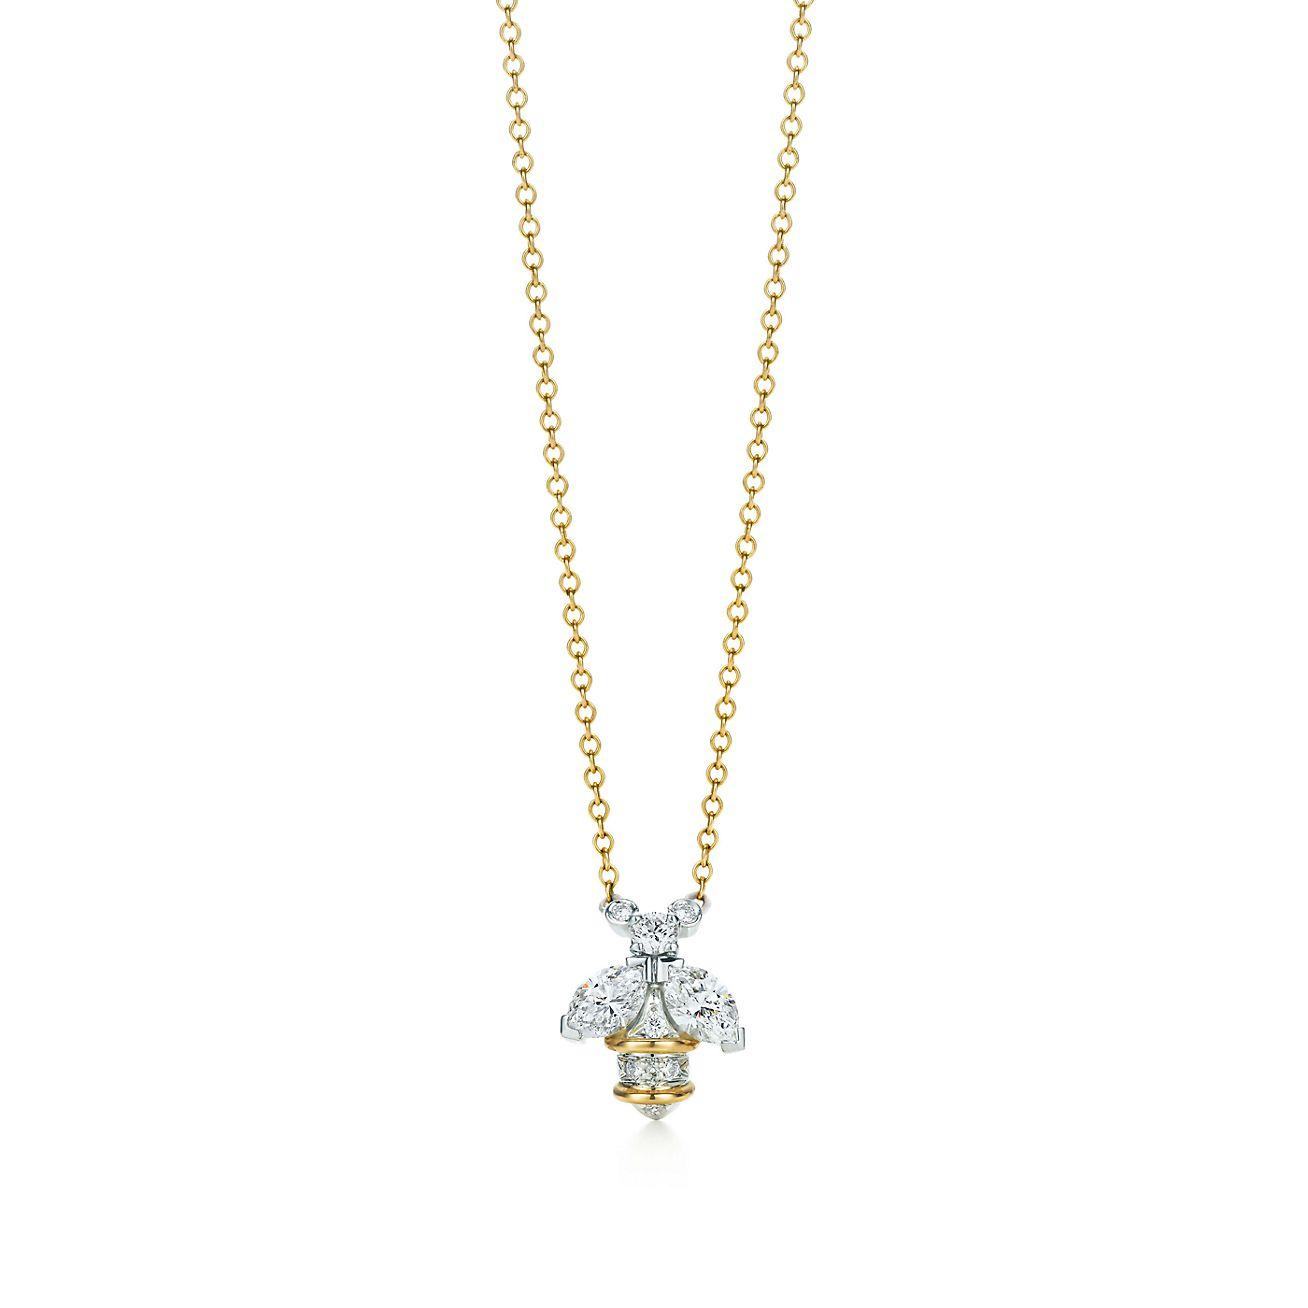 Tiffany co schlumberger bee pendant in 18k gold and platinum schlumbergerbee pendant aloadofball Choice Image